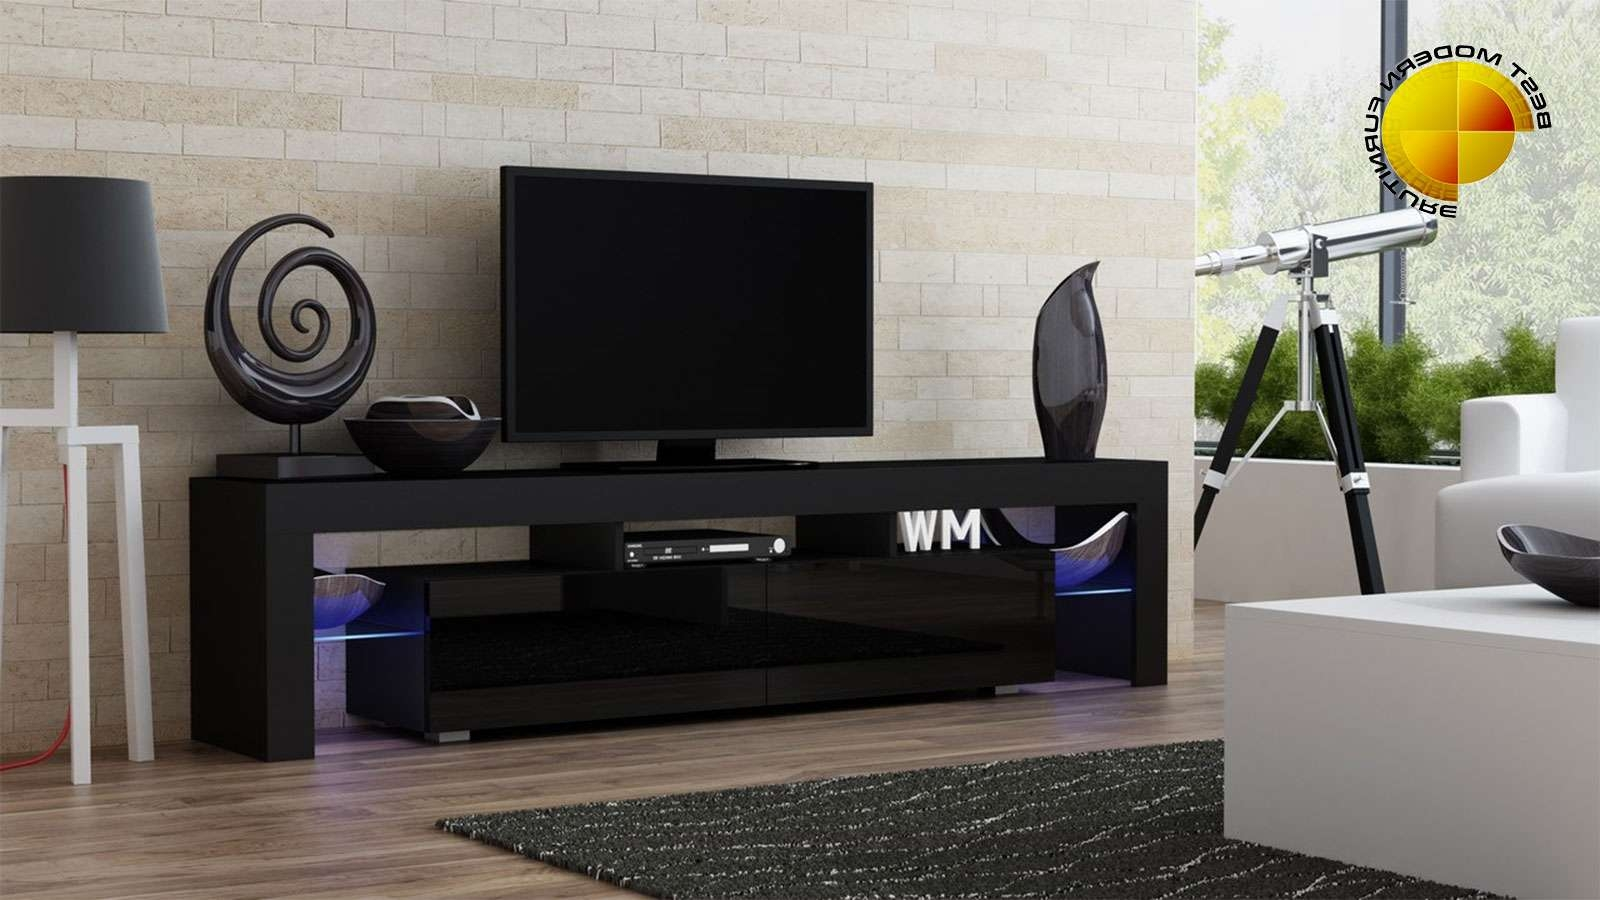 Modern Tv Stand 200Cm High Gloss Cabinet Rgb Led Lights Black Unit Intended For Gloss Tv Stands (View 12 of 15)